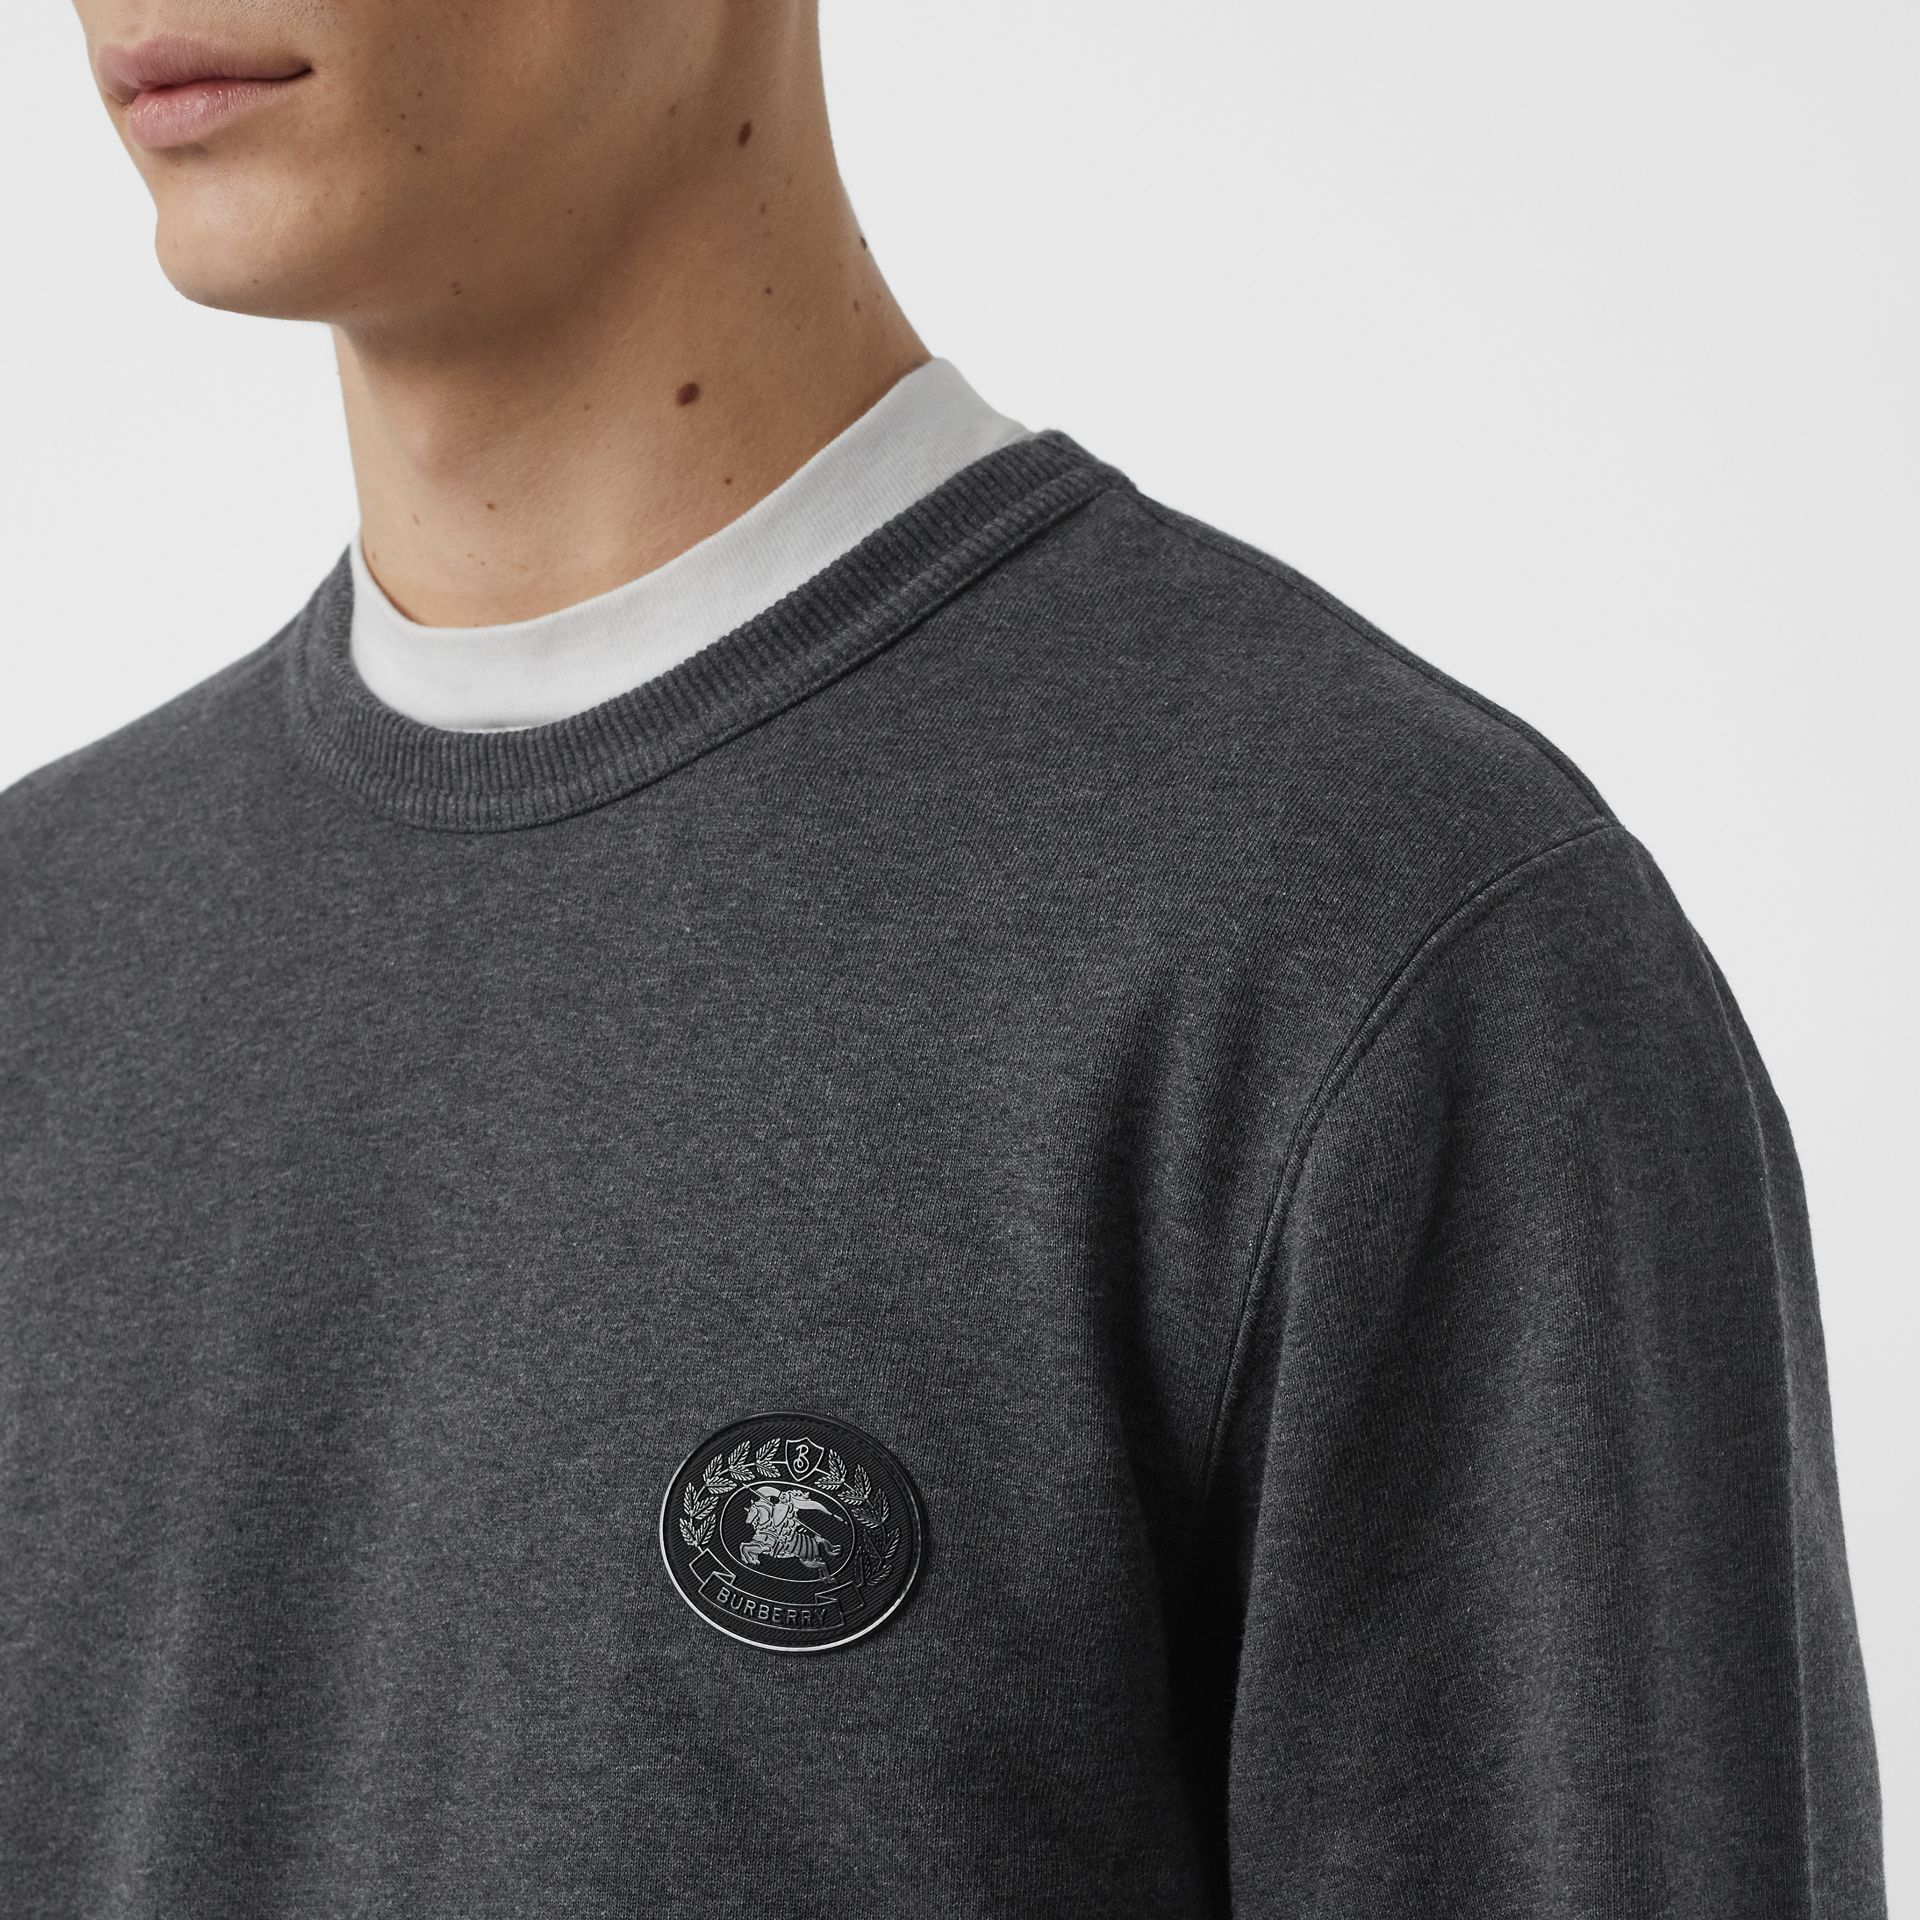 Embroidered Crest Cotton Sweatshirt in Mid Grey Melange - Men | Burberry - gallery image 1